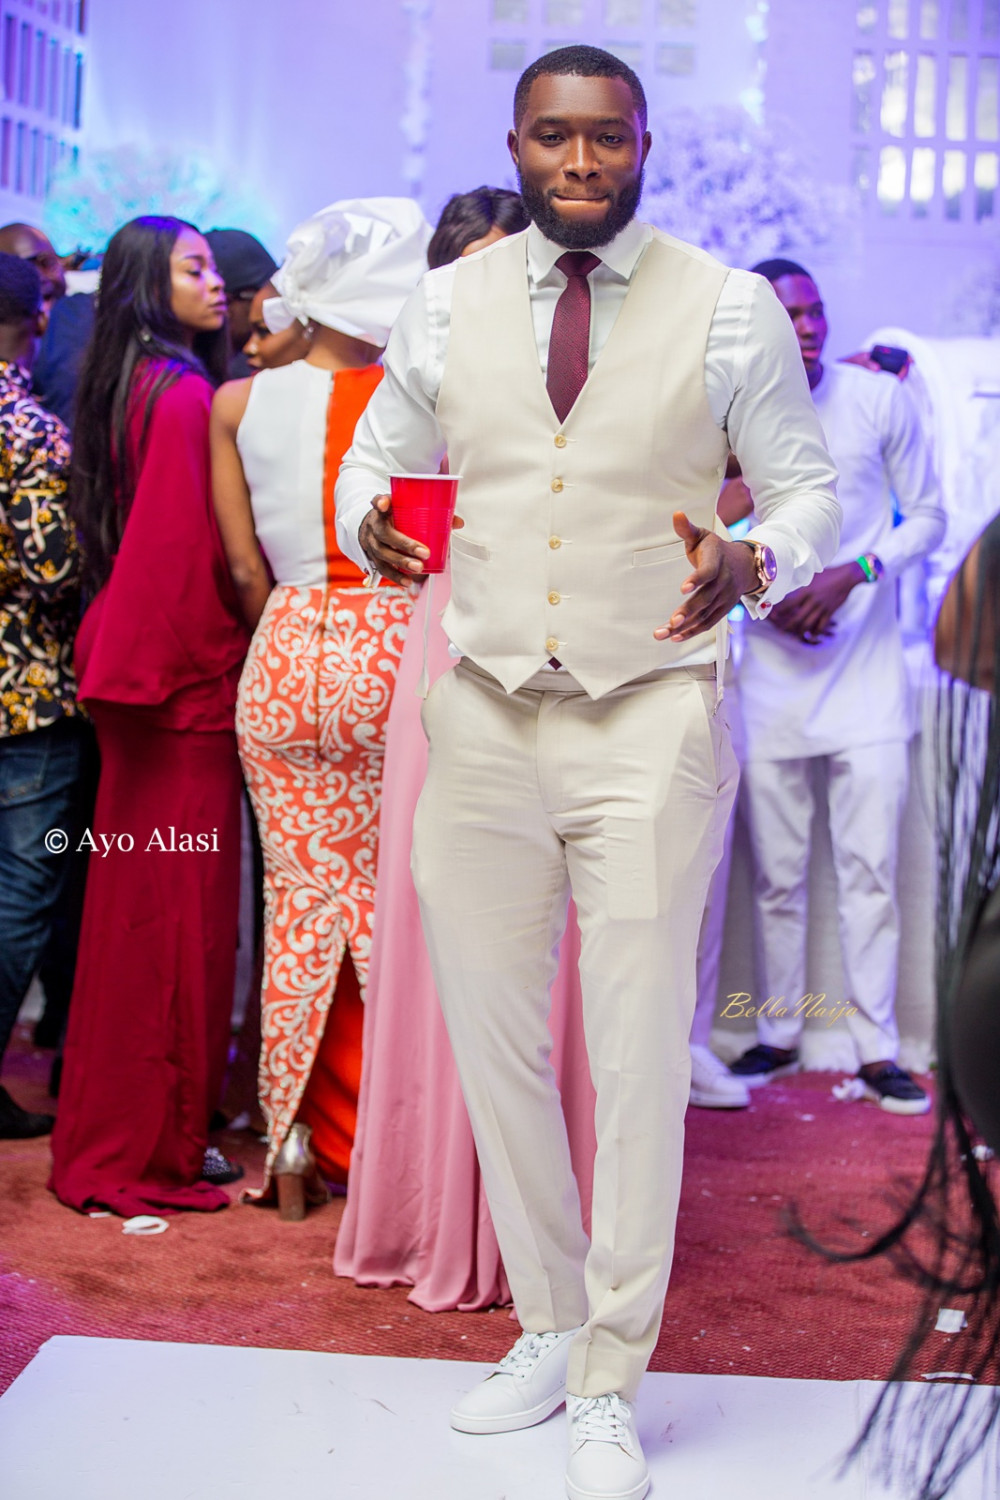 Yomi Casual Grace TheCasuals17 BellaNaija weddings 66